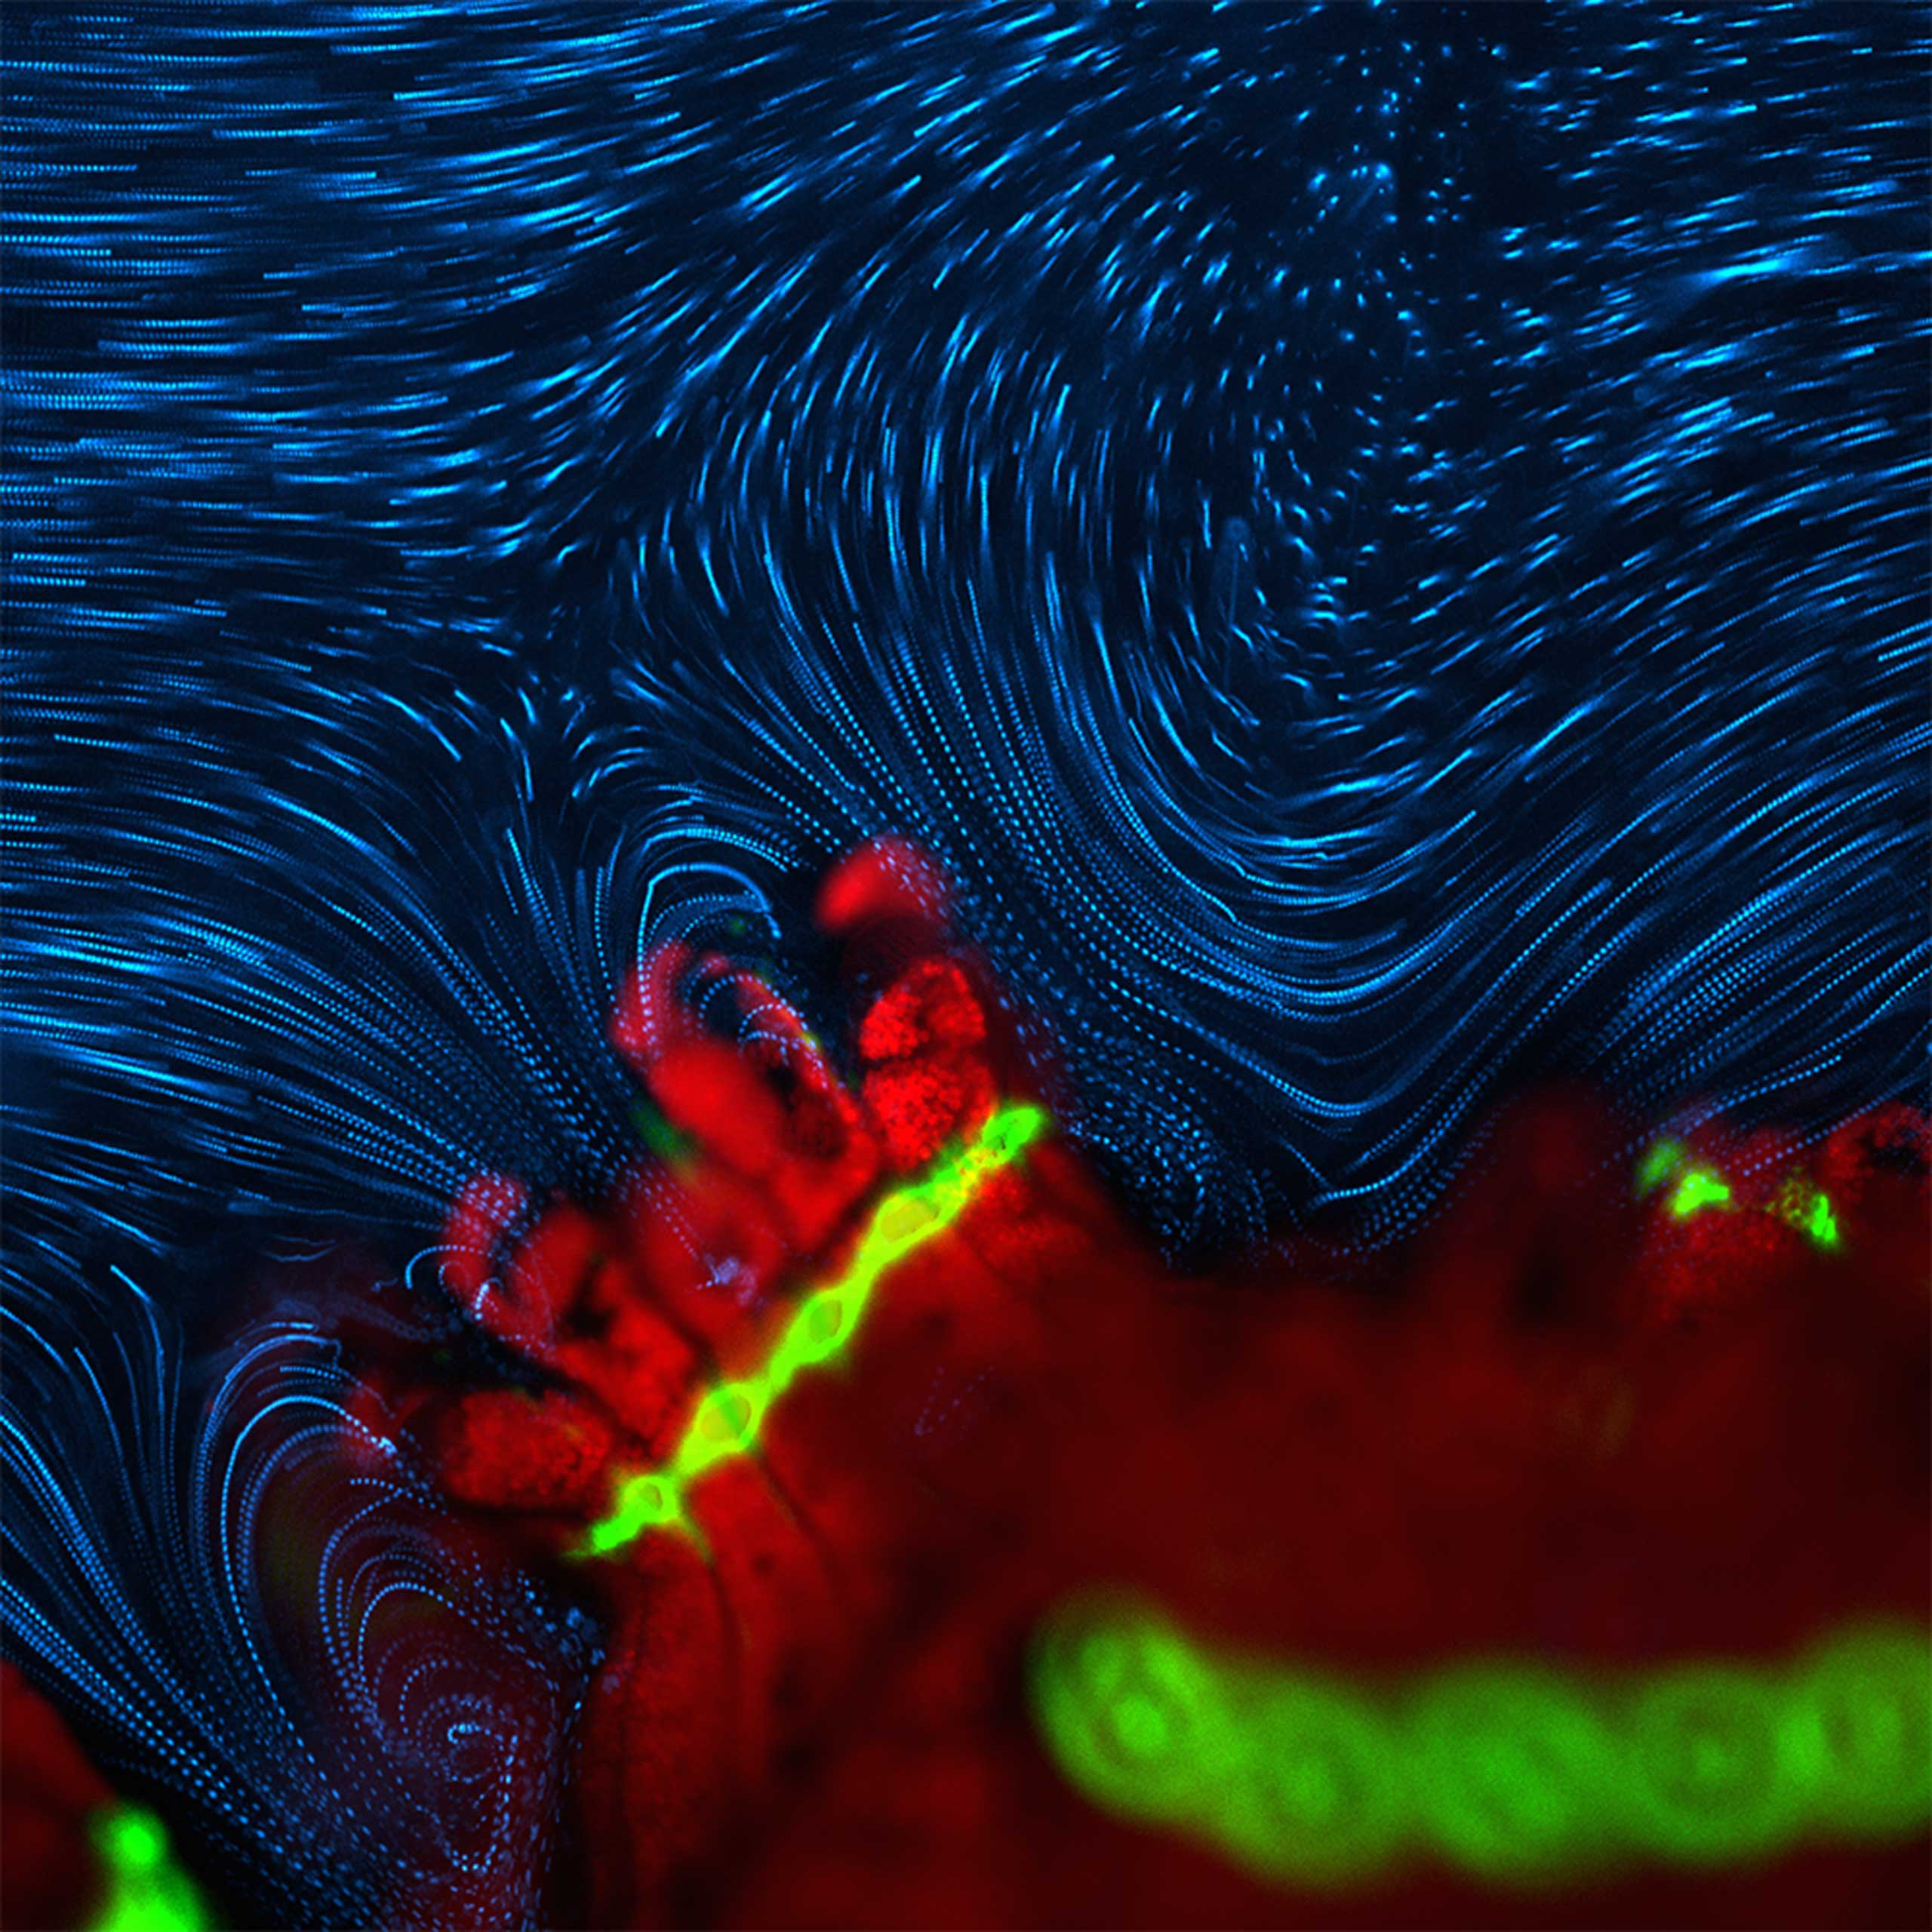 Active fluid flow around P. damicornis at 4x magnification